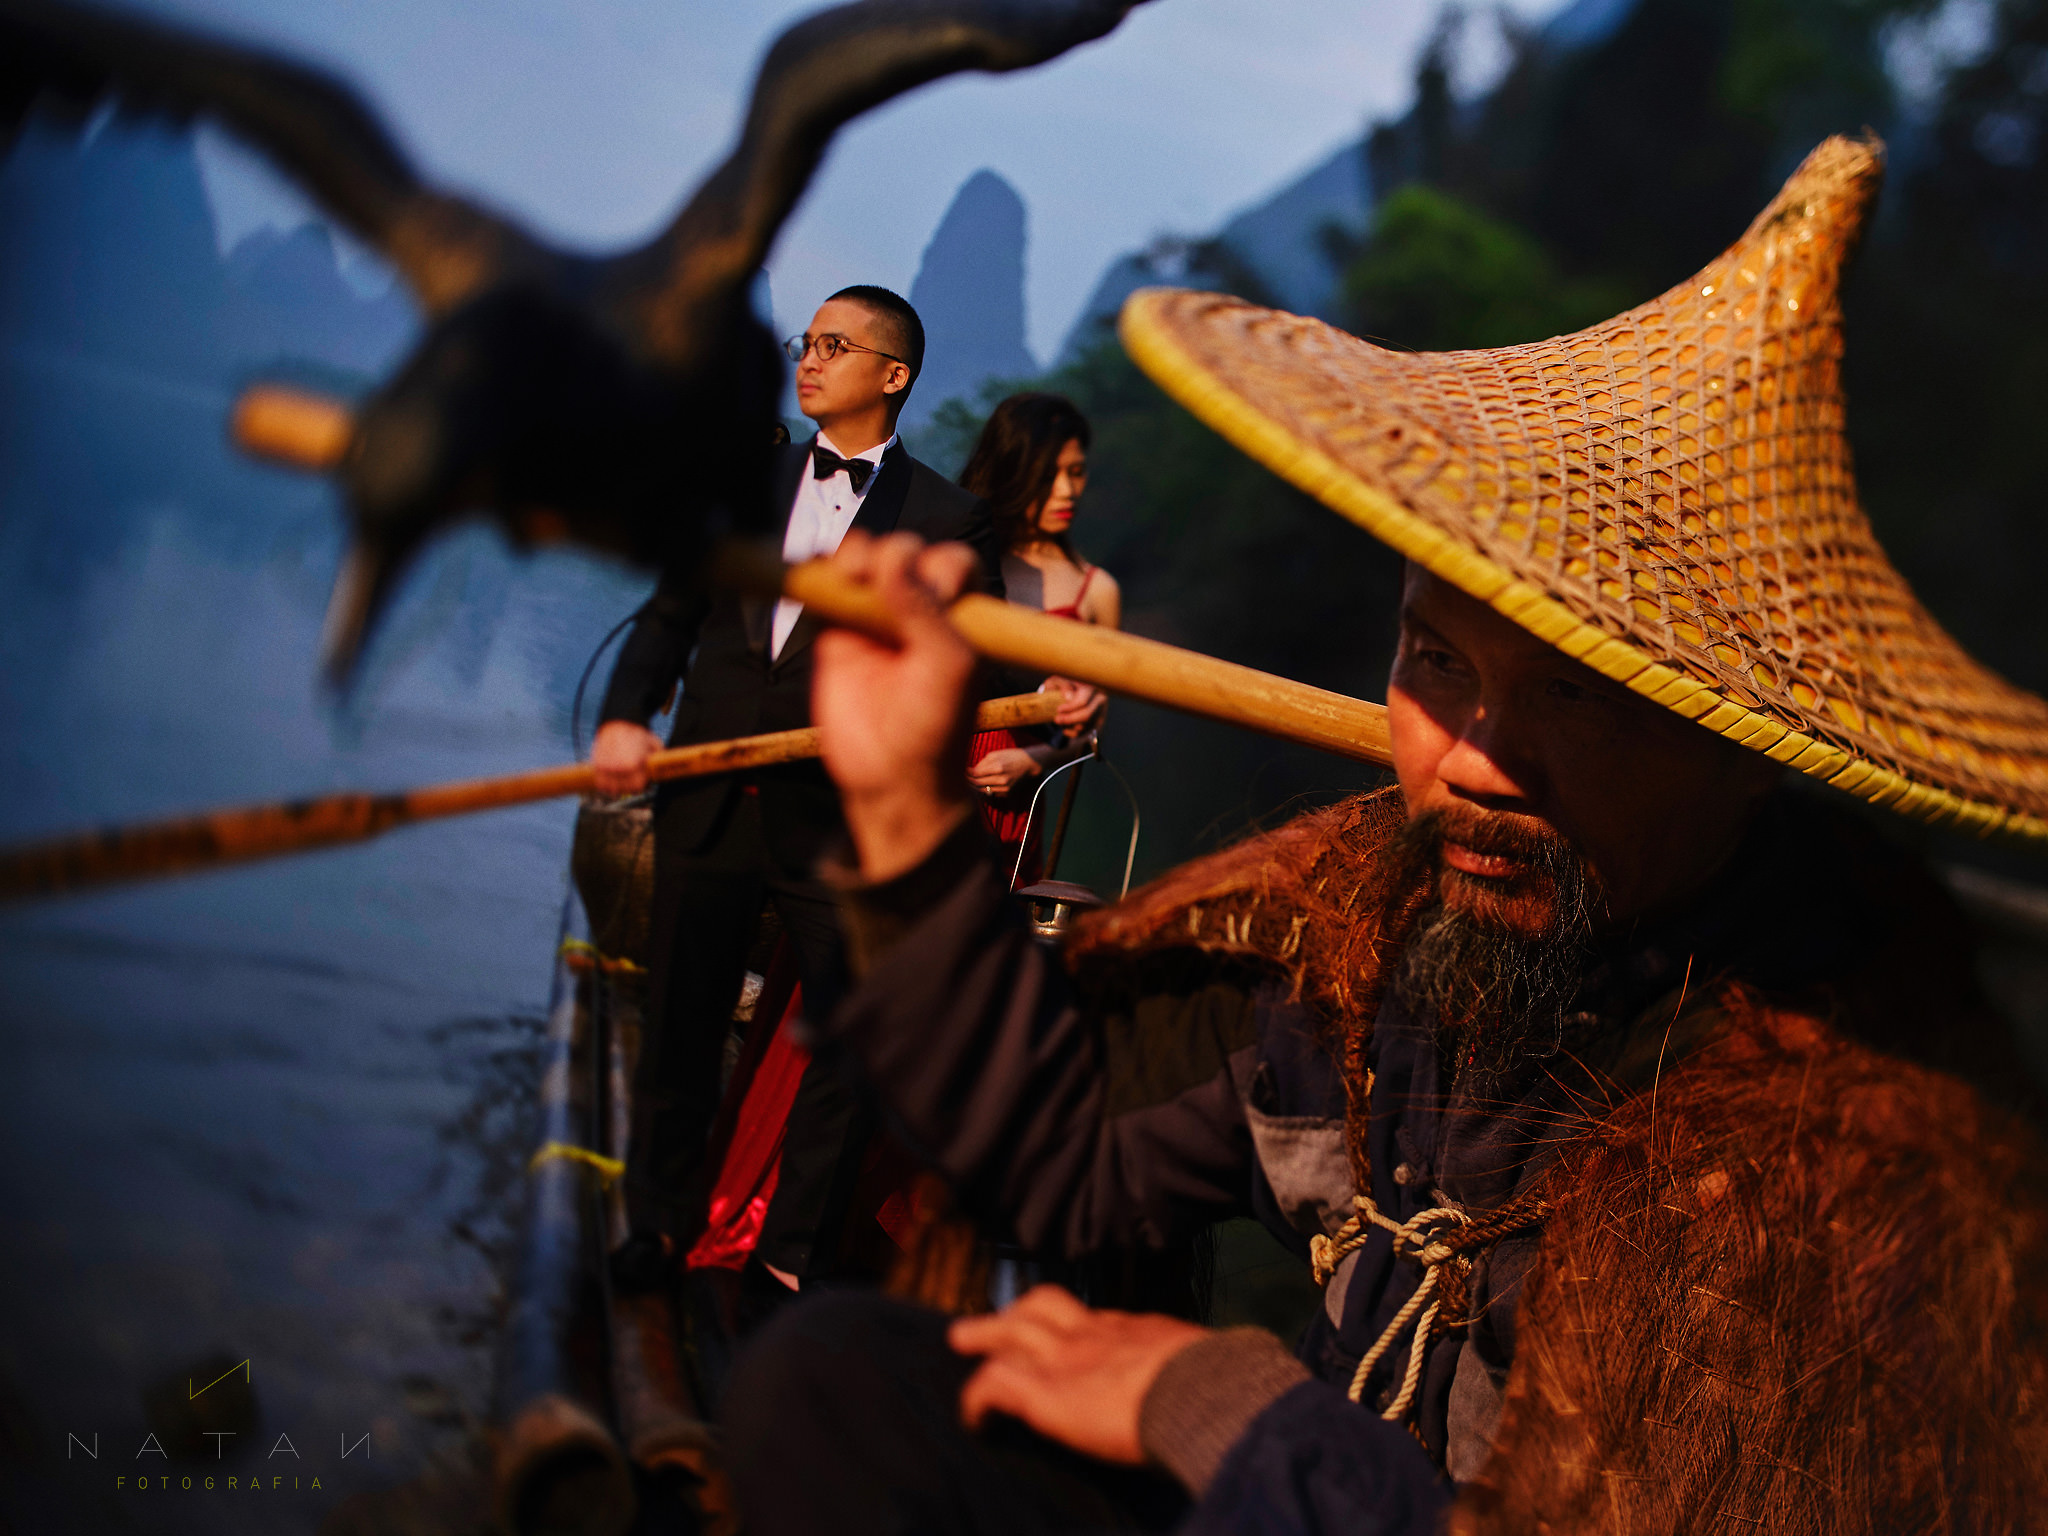 Fisherman in Guilin, China, with Bride and groom, Wedding elopement in Asia